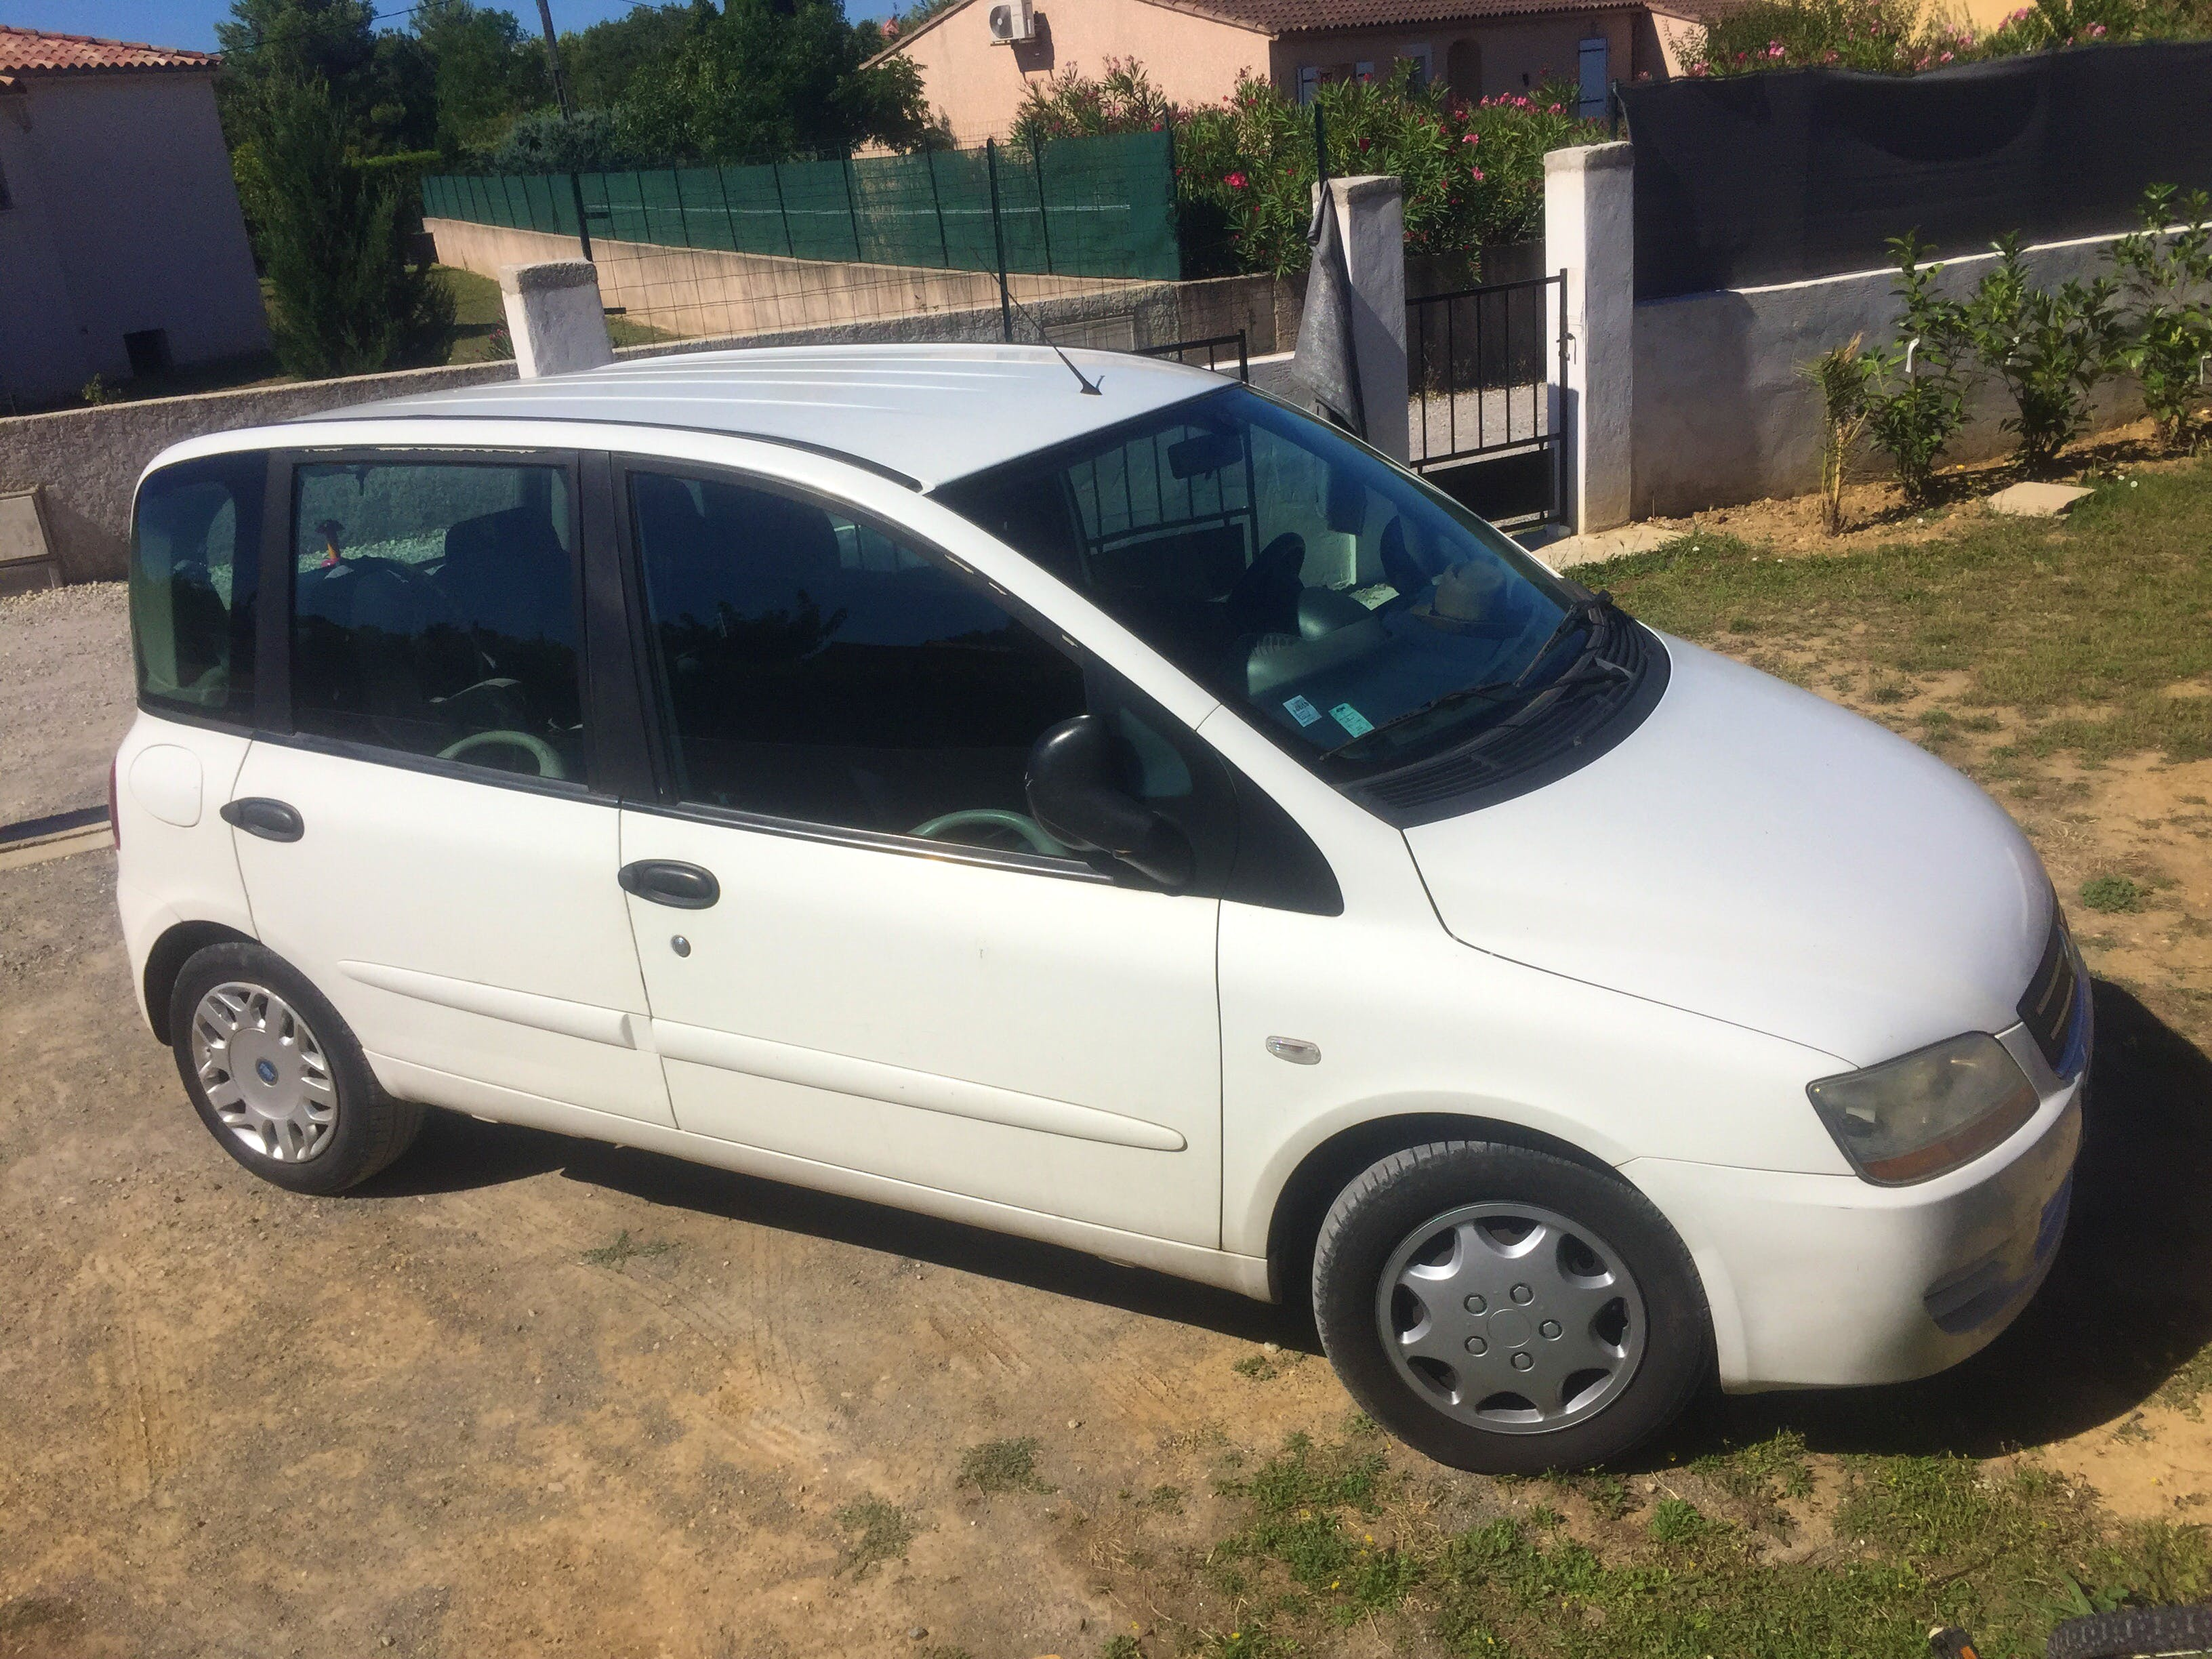 Fiat Multipla, 2004, Diesel, 6 places